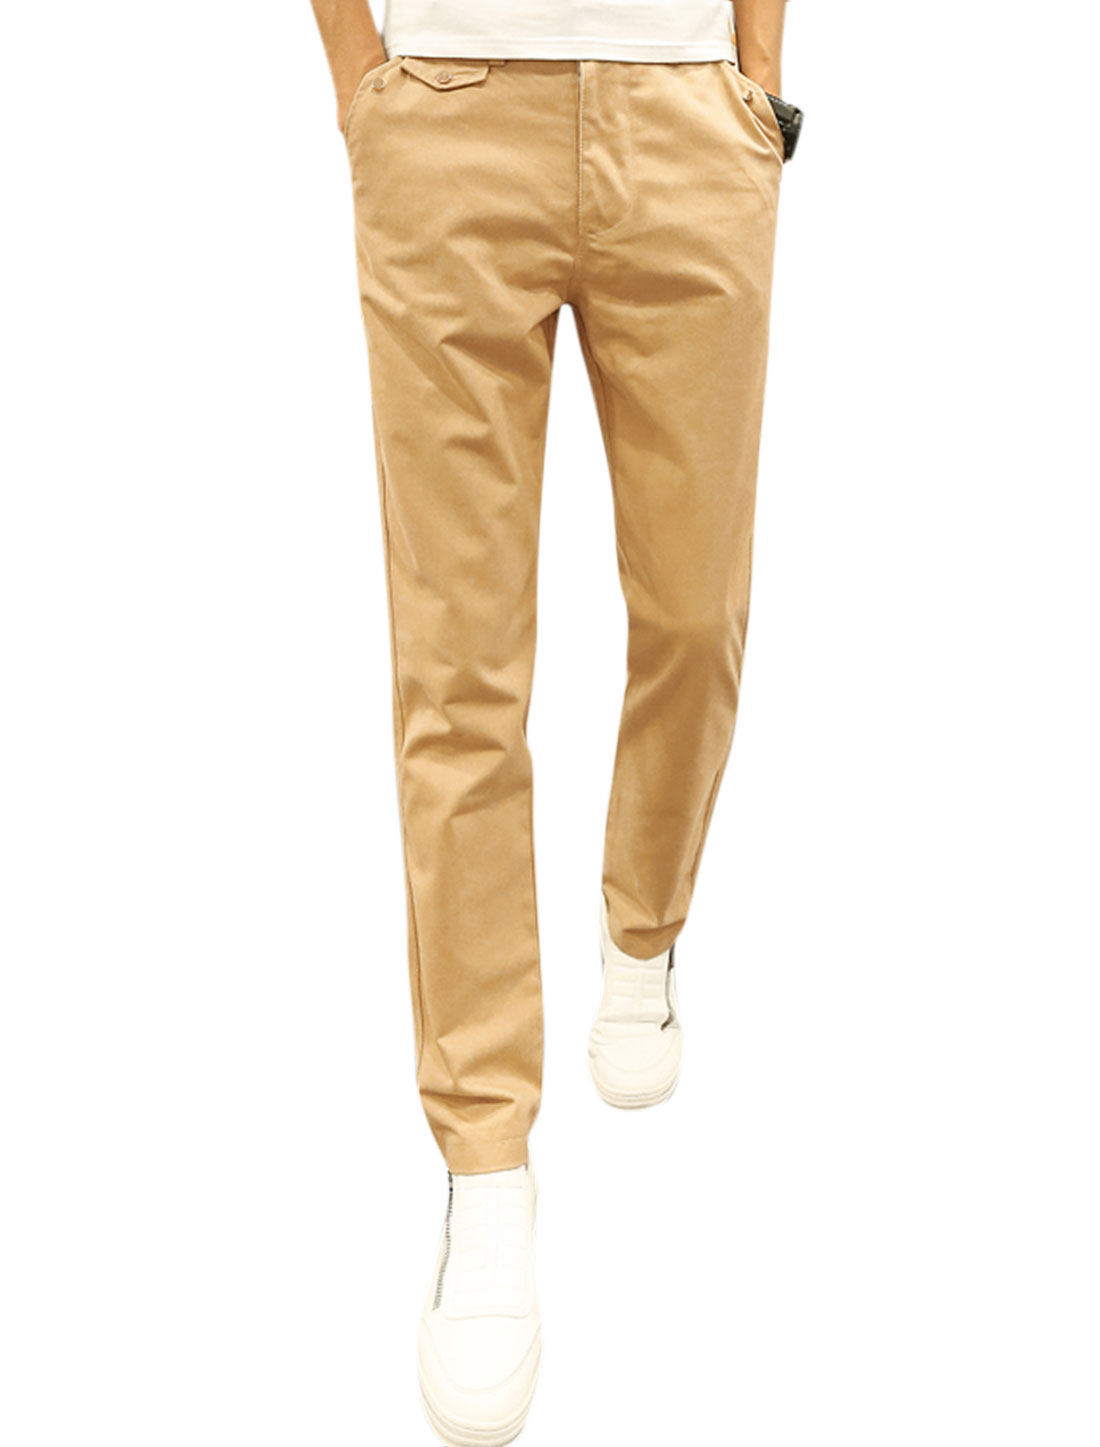 Men Zip Fly Button Closed Mid Rise Slant Pockets Tapered Leisure Pants Beige W32